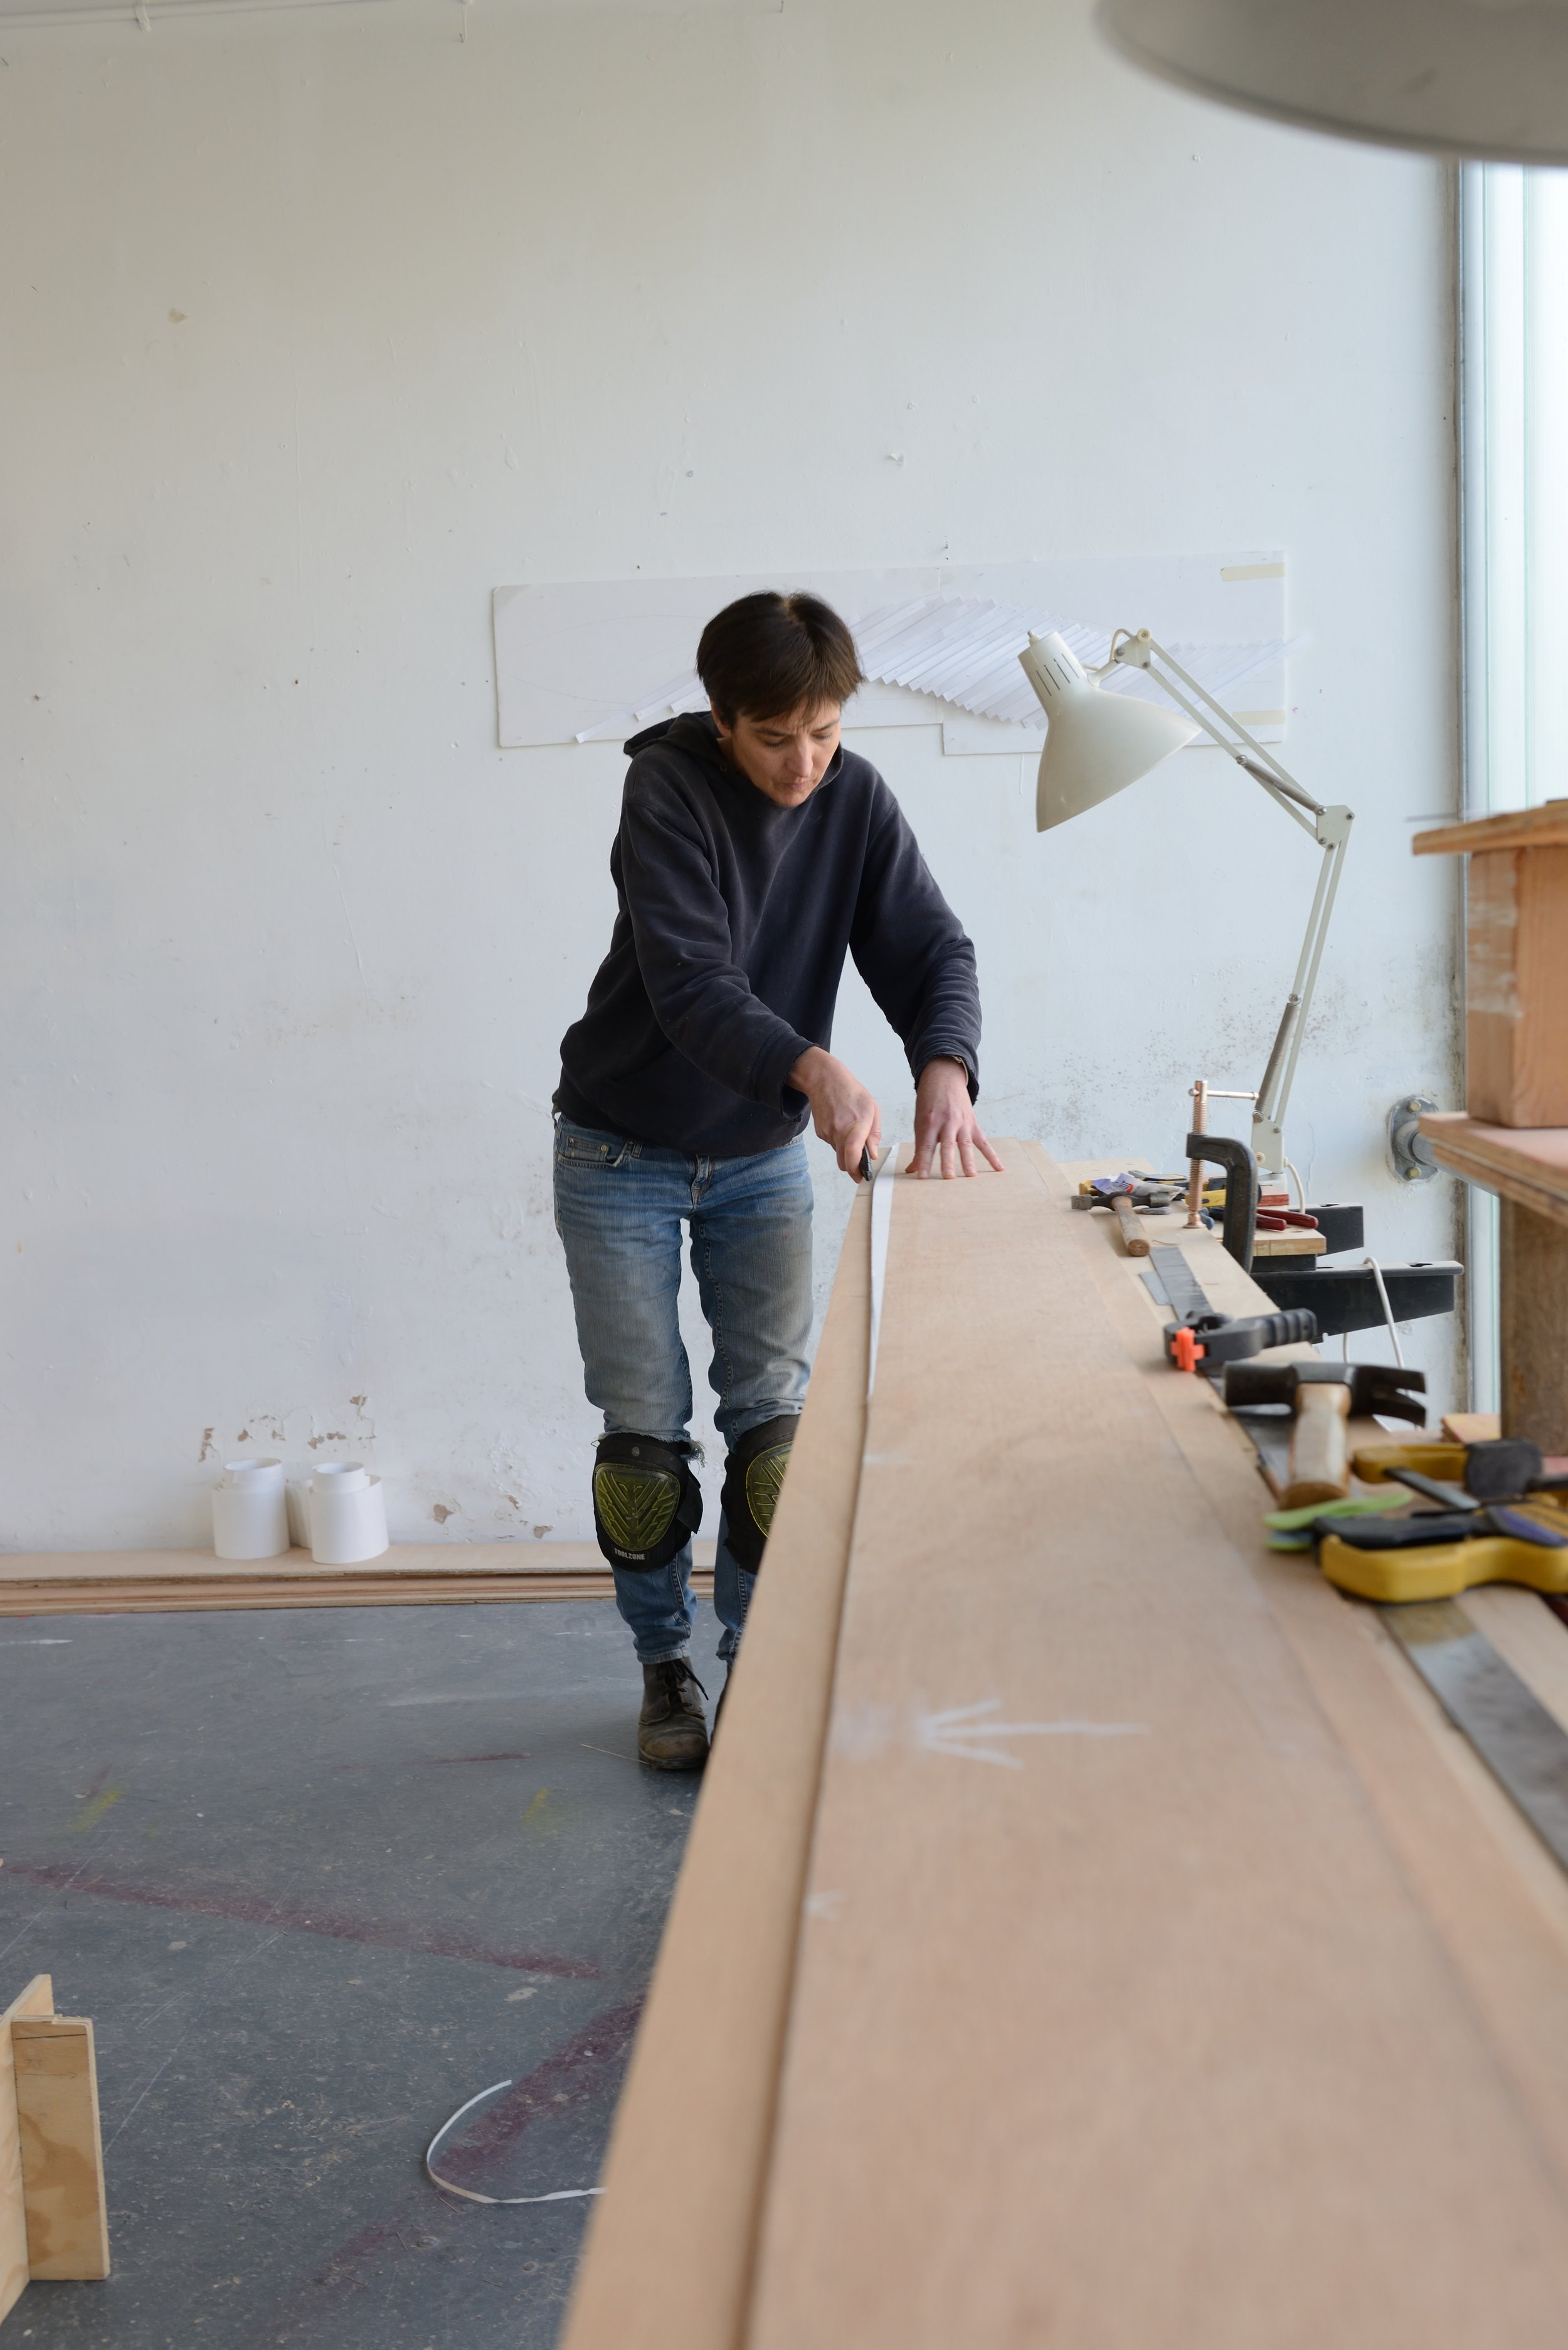 Joanna Sands in the Sculpture Shock studio, photo by AK Purkiss